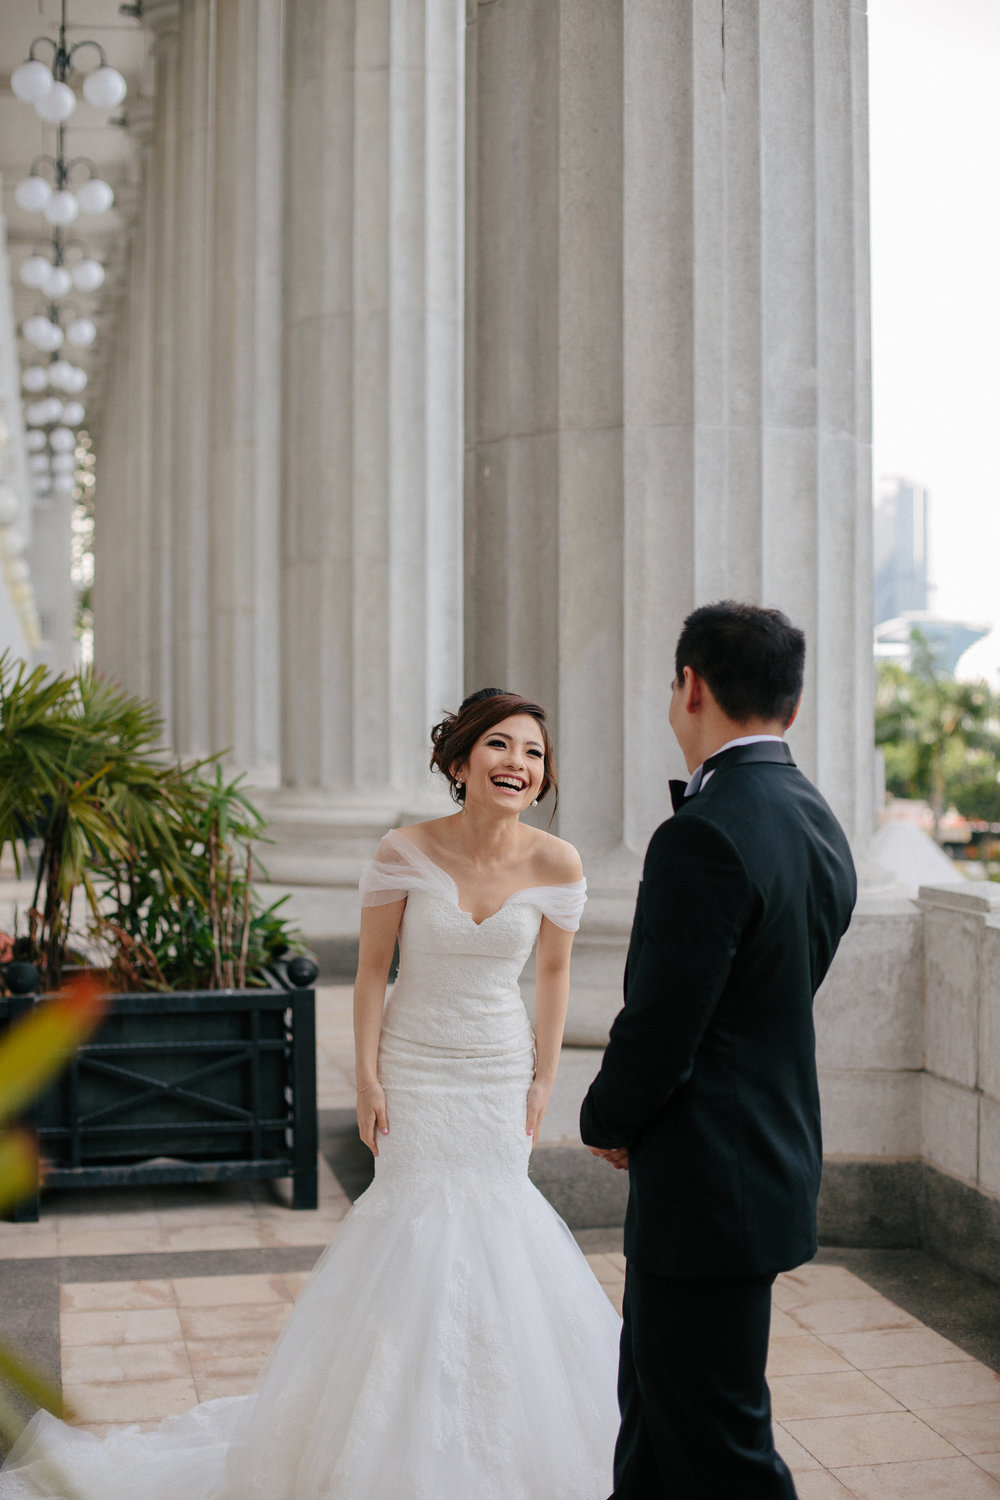 singapore-wedding-photographer-cheryl-matthew-fullerton-hotel-wedding-41.jpg